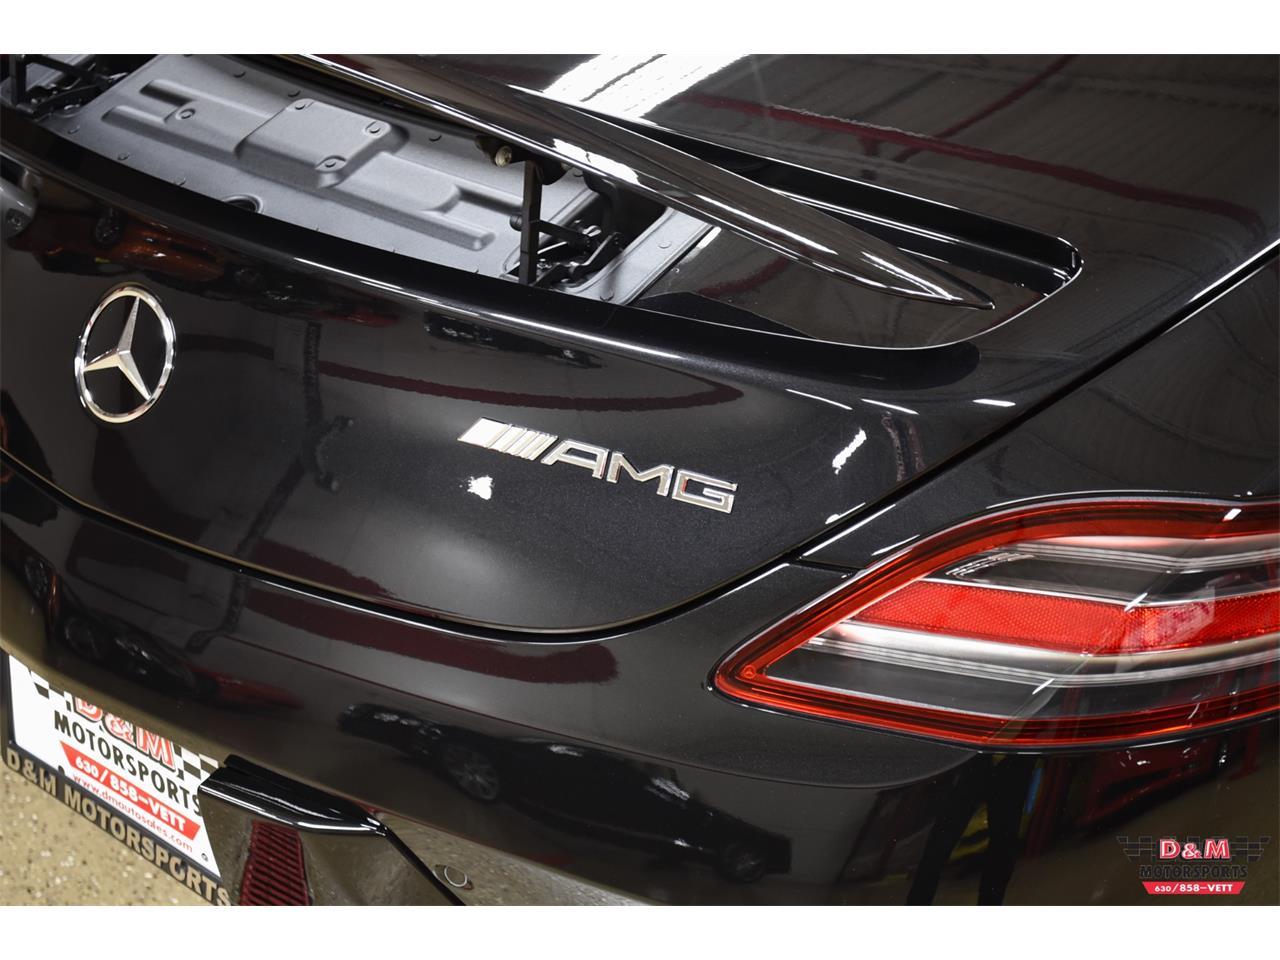 Large Picture of 2012 Mercedes-Benz SLS AMG - $199,995.00 Offered by D & M Motorsports - PXCB